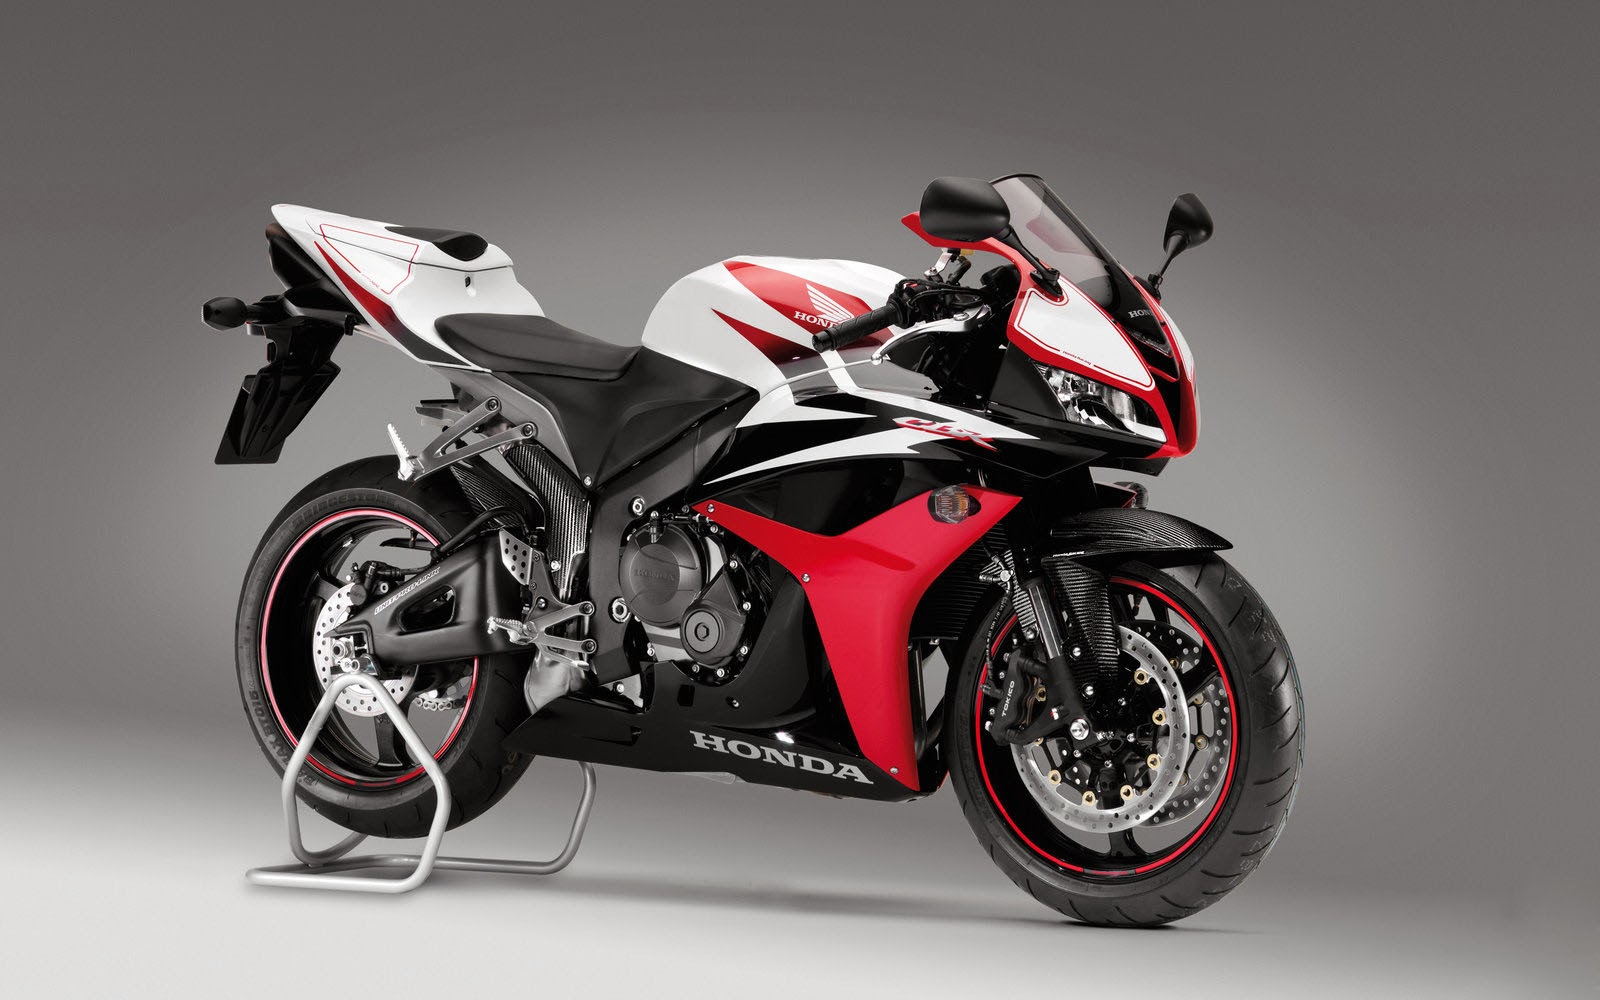 wallpapers honda cbr 600rr wallpapers. Black Bedroom Furniture Sets. Home Design Ideas